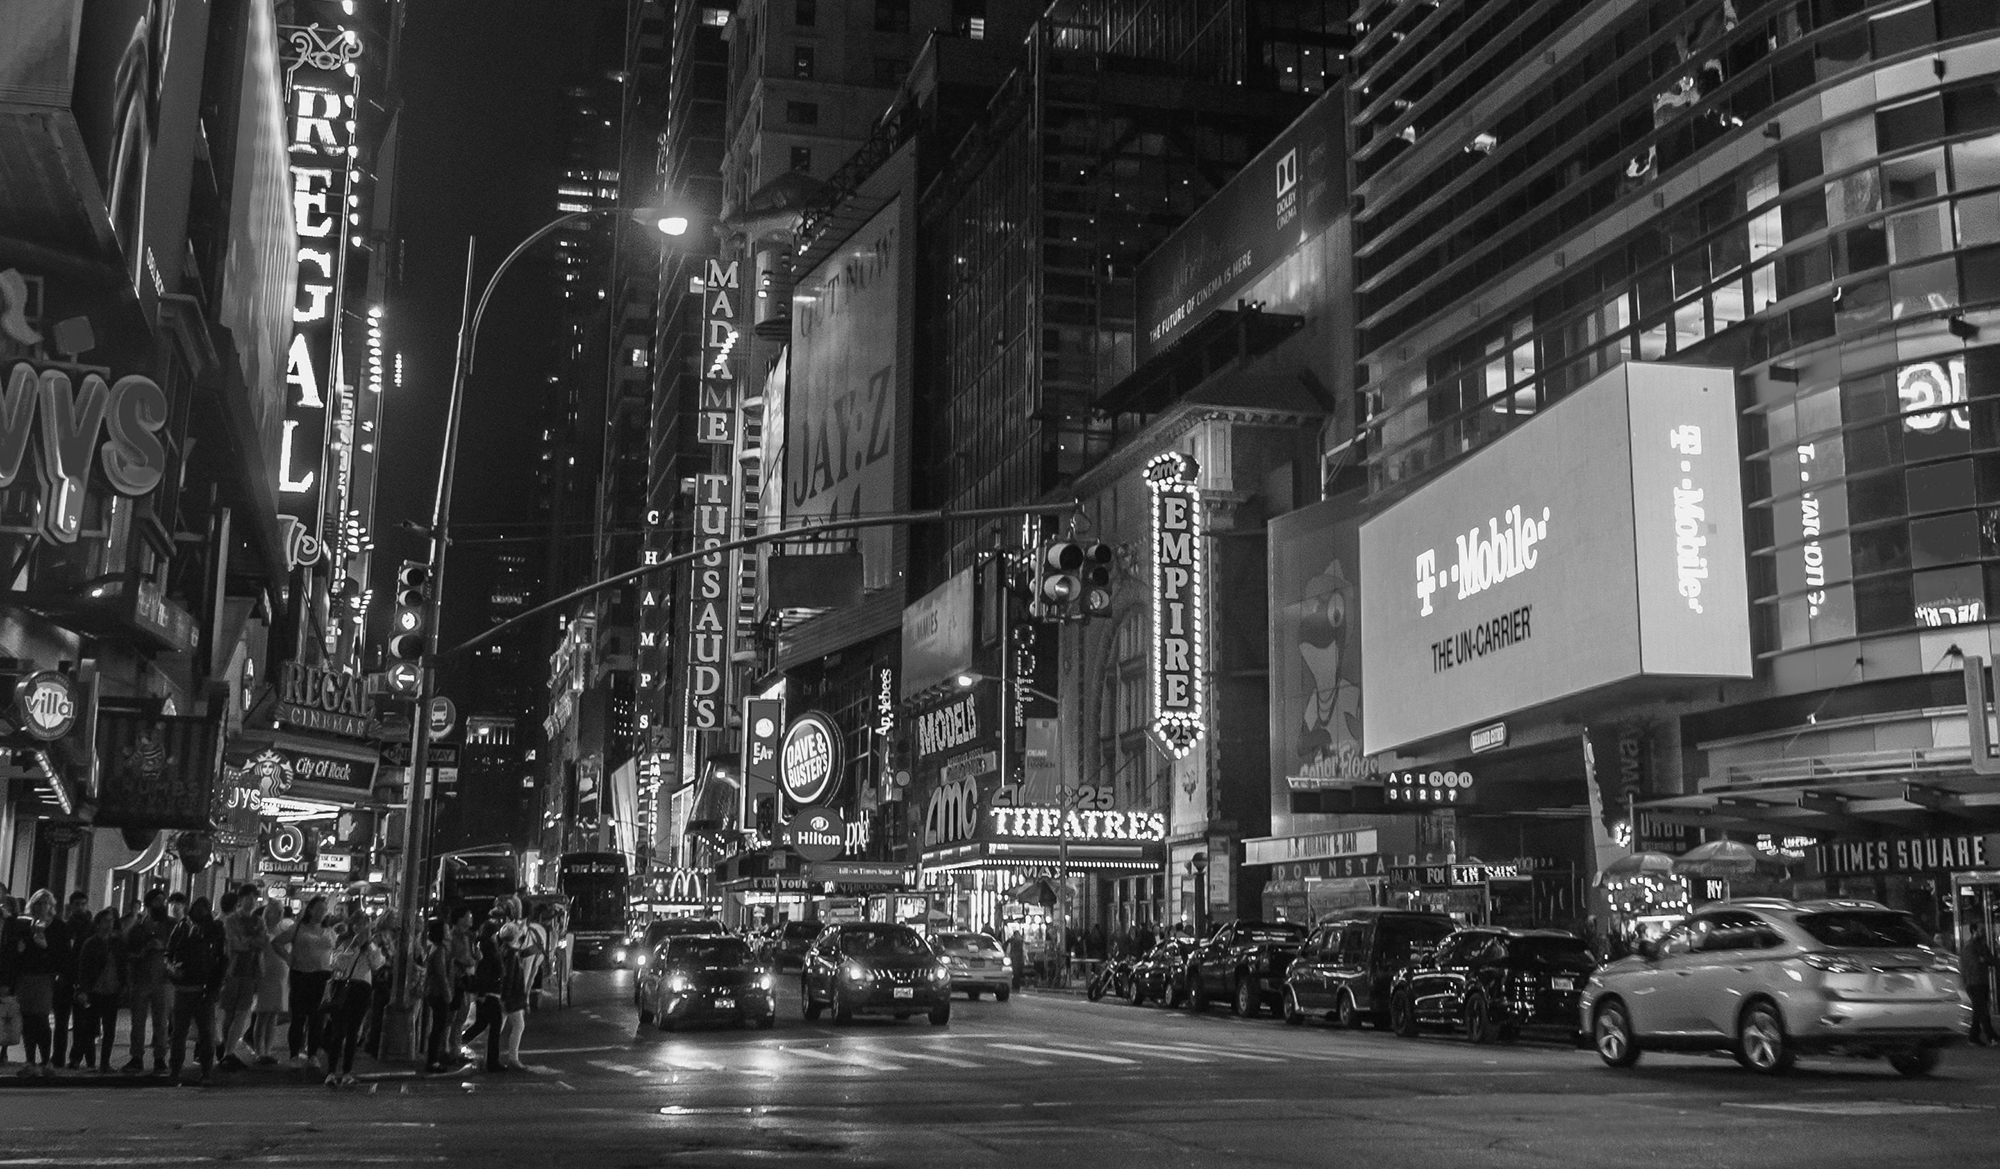 Black and white photo of a busy city intersection surrounded by billboards